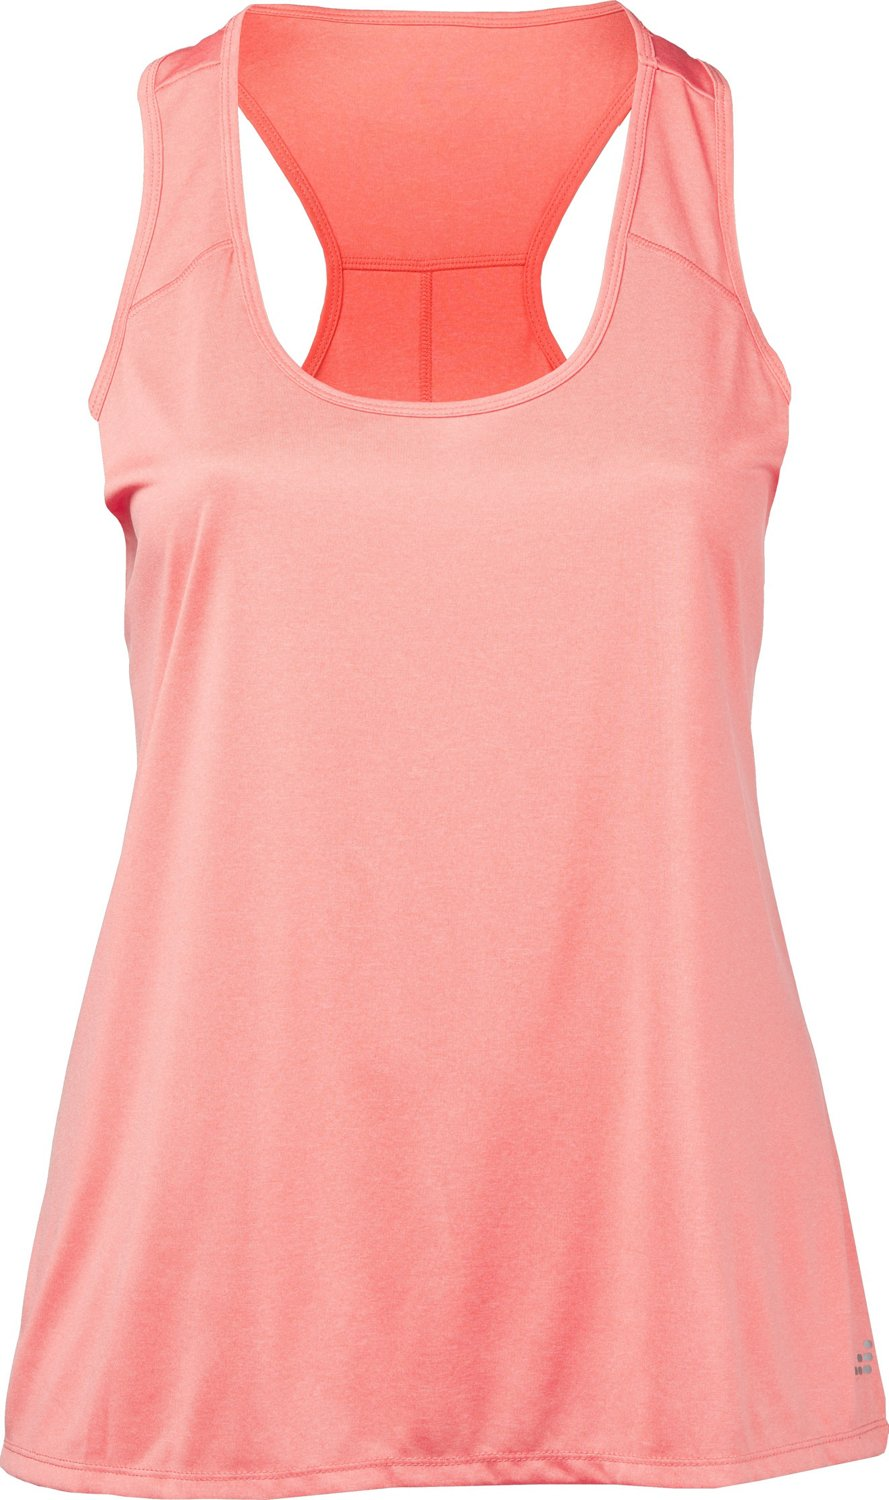 86731597d4 Display product reviews for BCG Women s Plus Size Training Tank Top